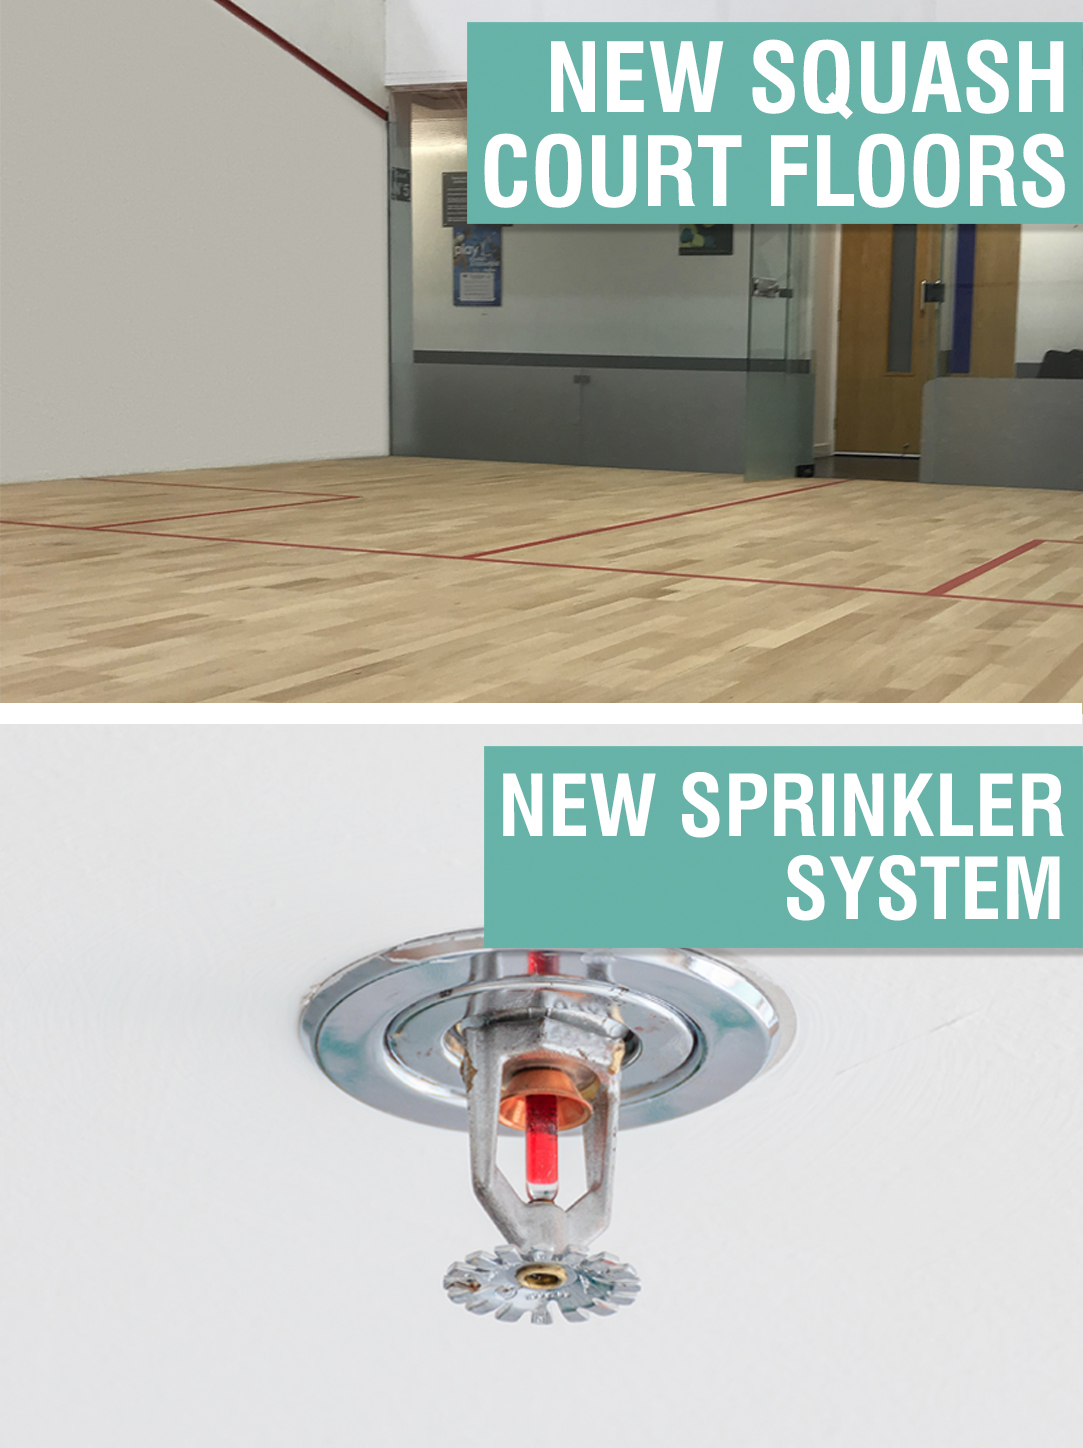 New Squash Court Floors & New Sprinkler System